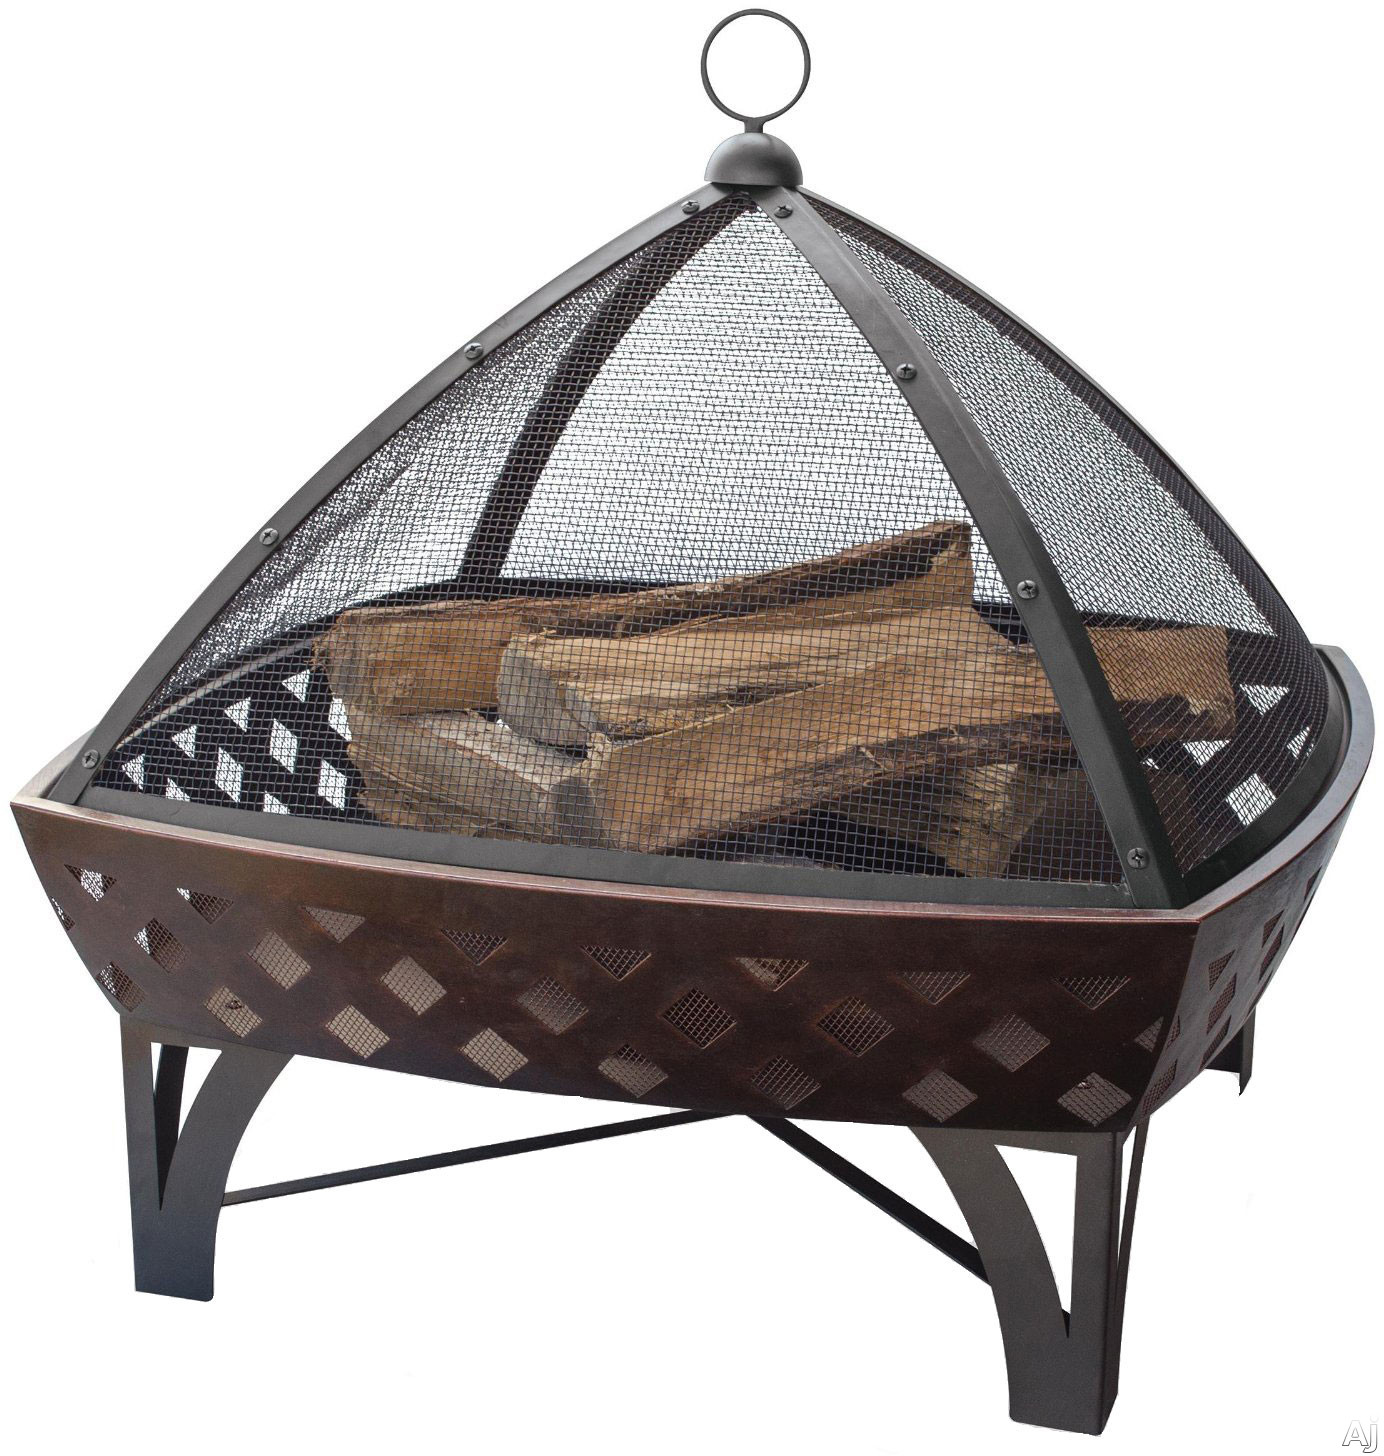 Blue Rhino WAD1401SP Outdoor Firebowl Wood Burning Fire Pit with Lattice Design in Oil Rubbed Bronze